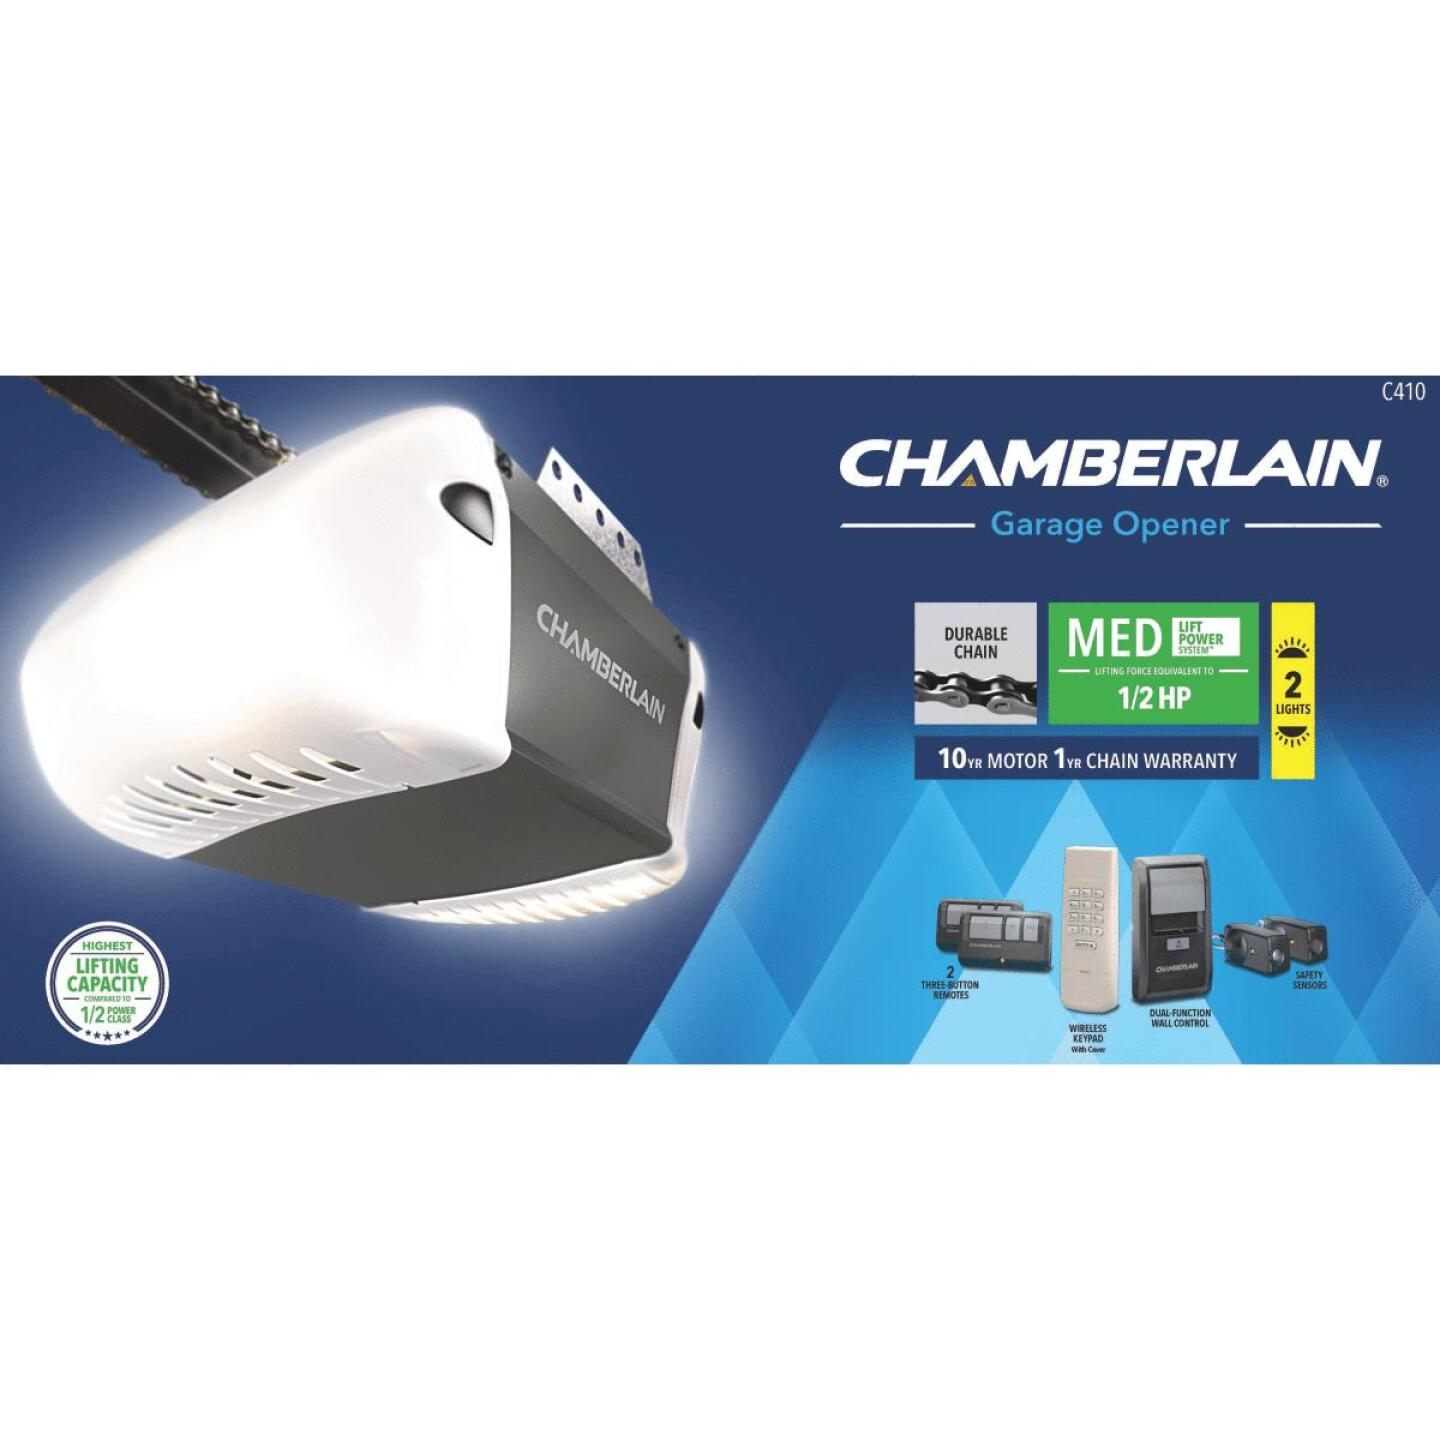 Chamberlain C-410 1/2 HP Durable Chain Drive Garage Door Opener with MED Lifting Power Image 2